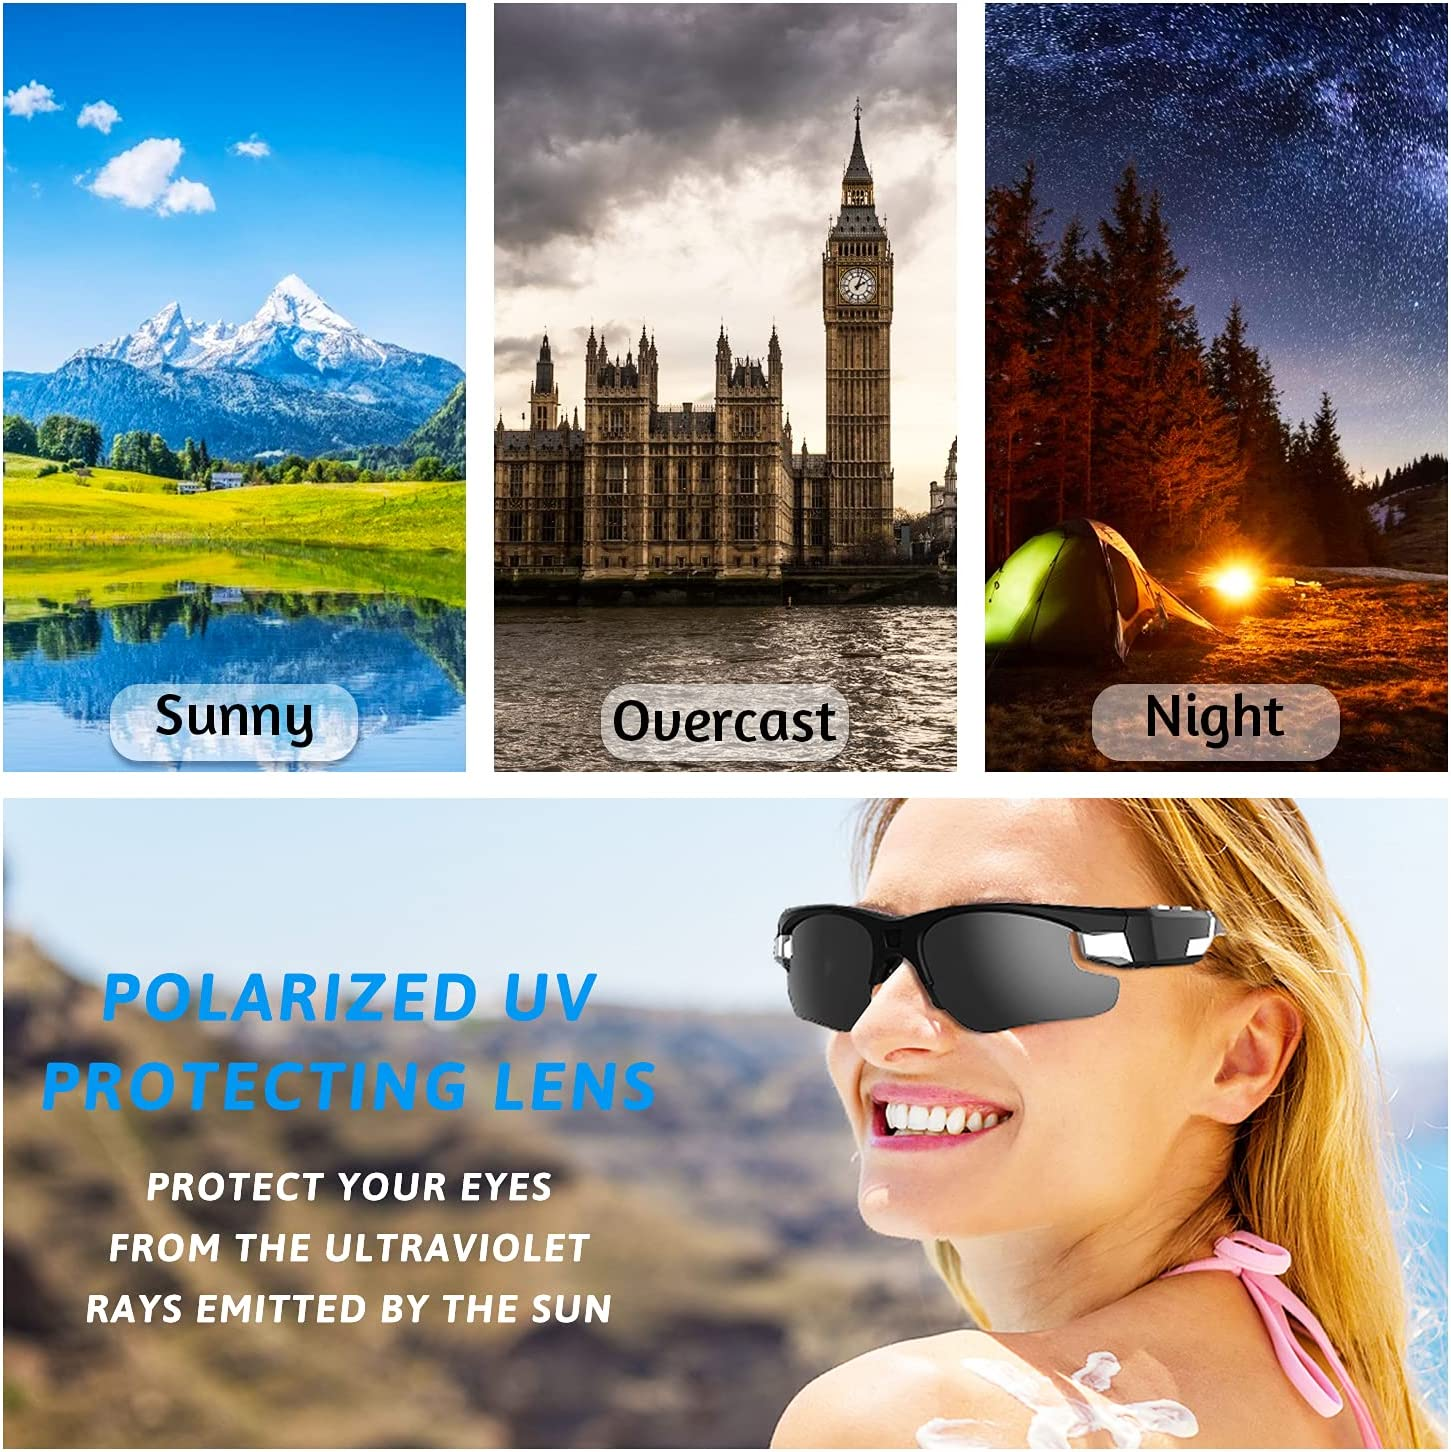 Camera Sunglasses with Polarized Lenses, 1080P Full HD Mini Video Recording Glasses Camera,Unisex Outdoor Sports Action Camera for Cycling,Driving,Hiking,Motorcycle,Travelin(Include 32G Micro SD Card)